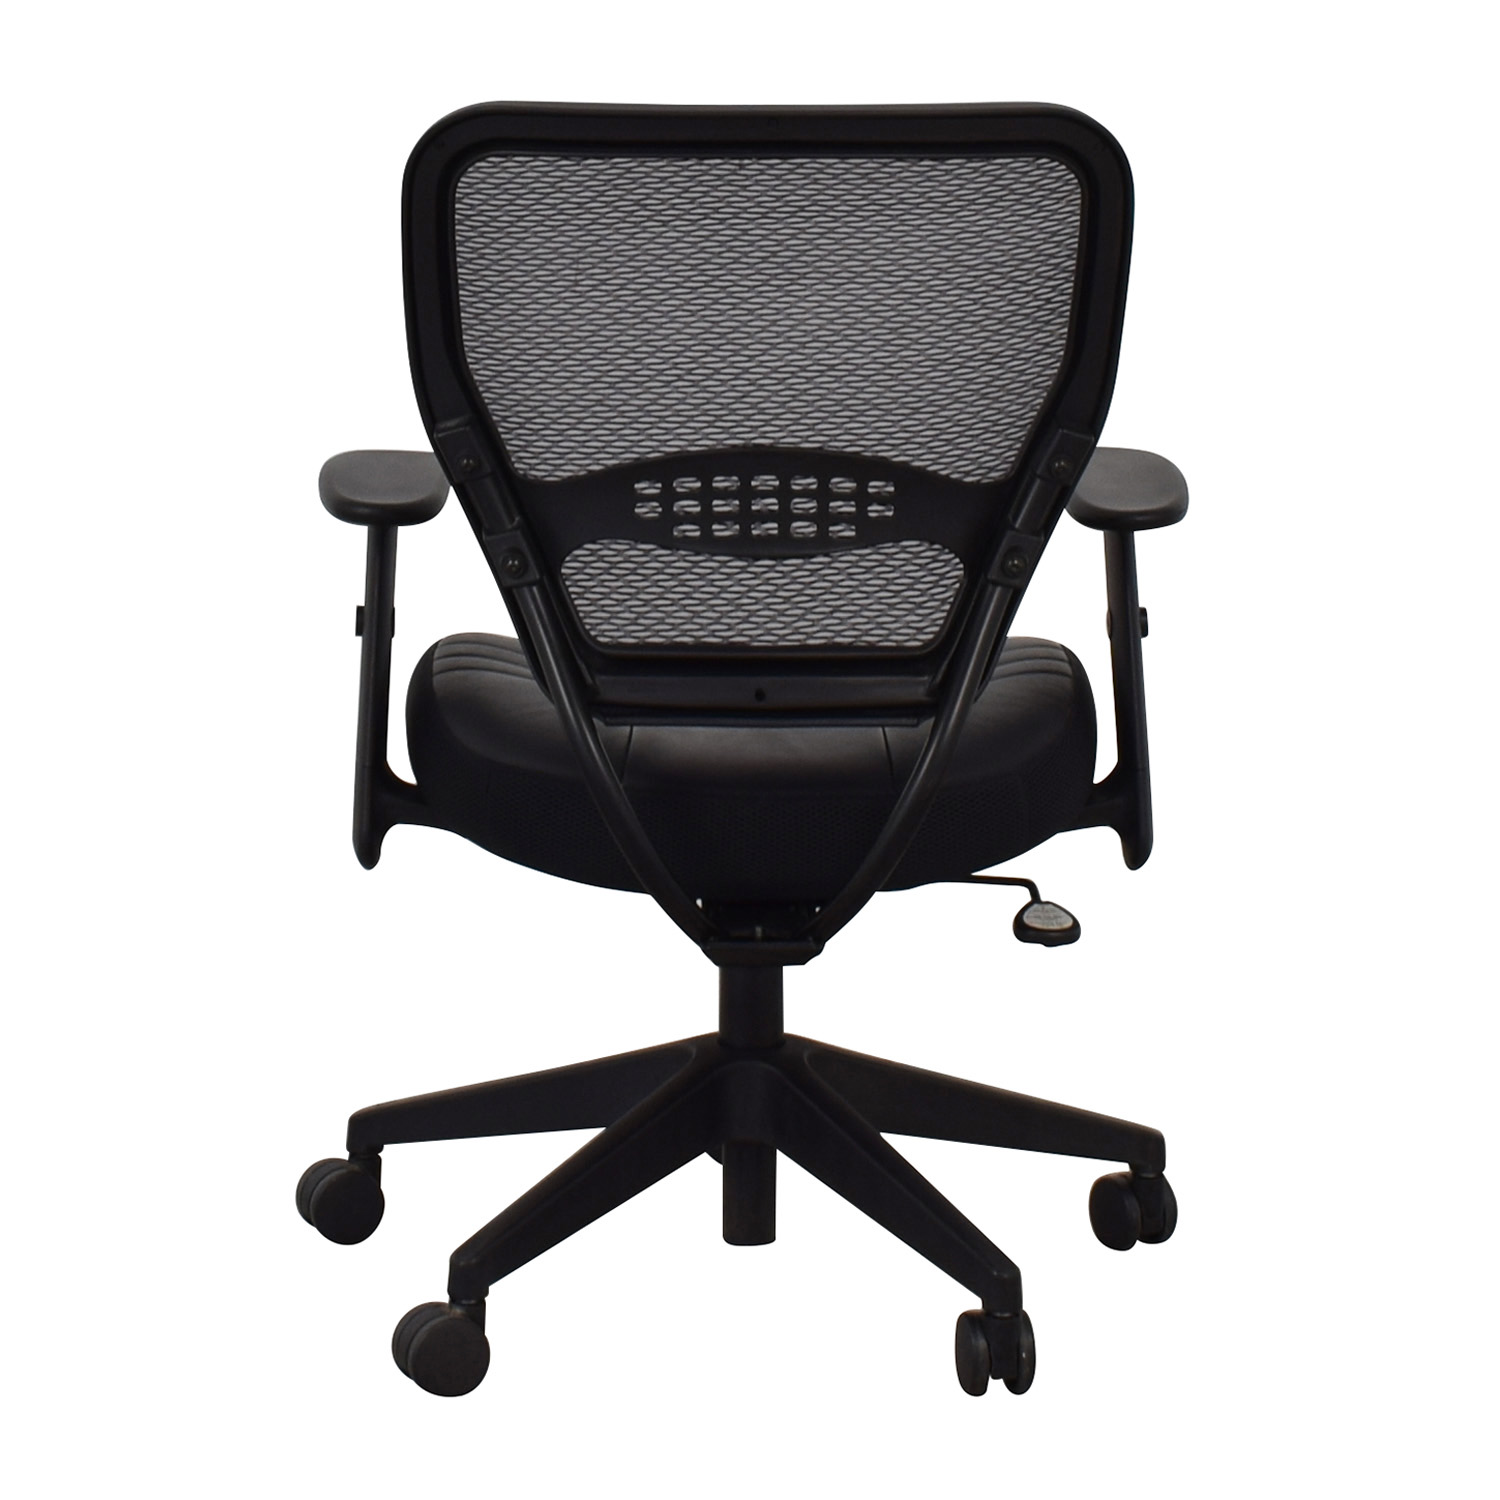 Office Star Mesh Desk Chair / Home Office Chairs